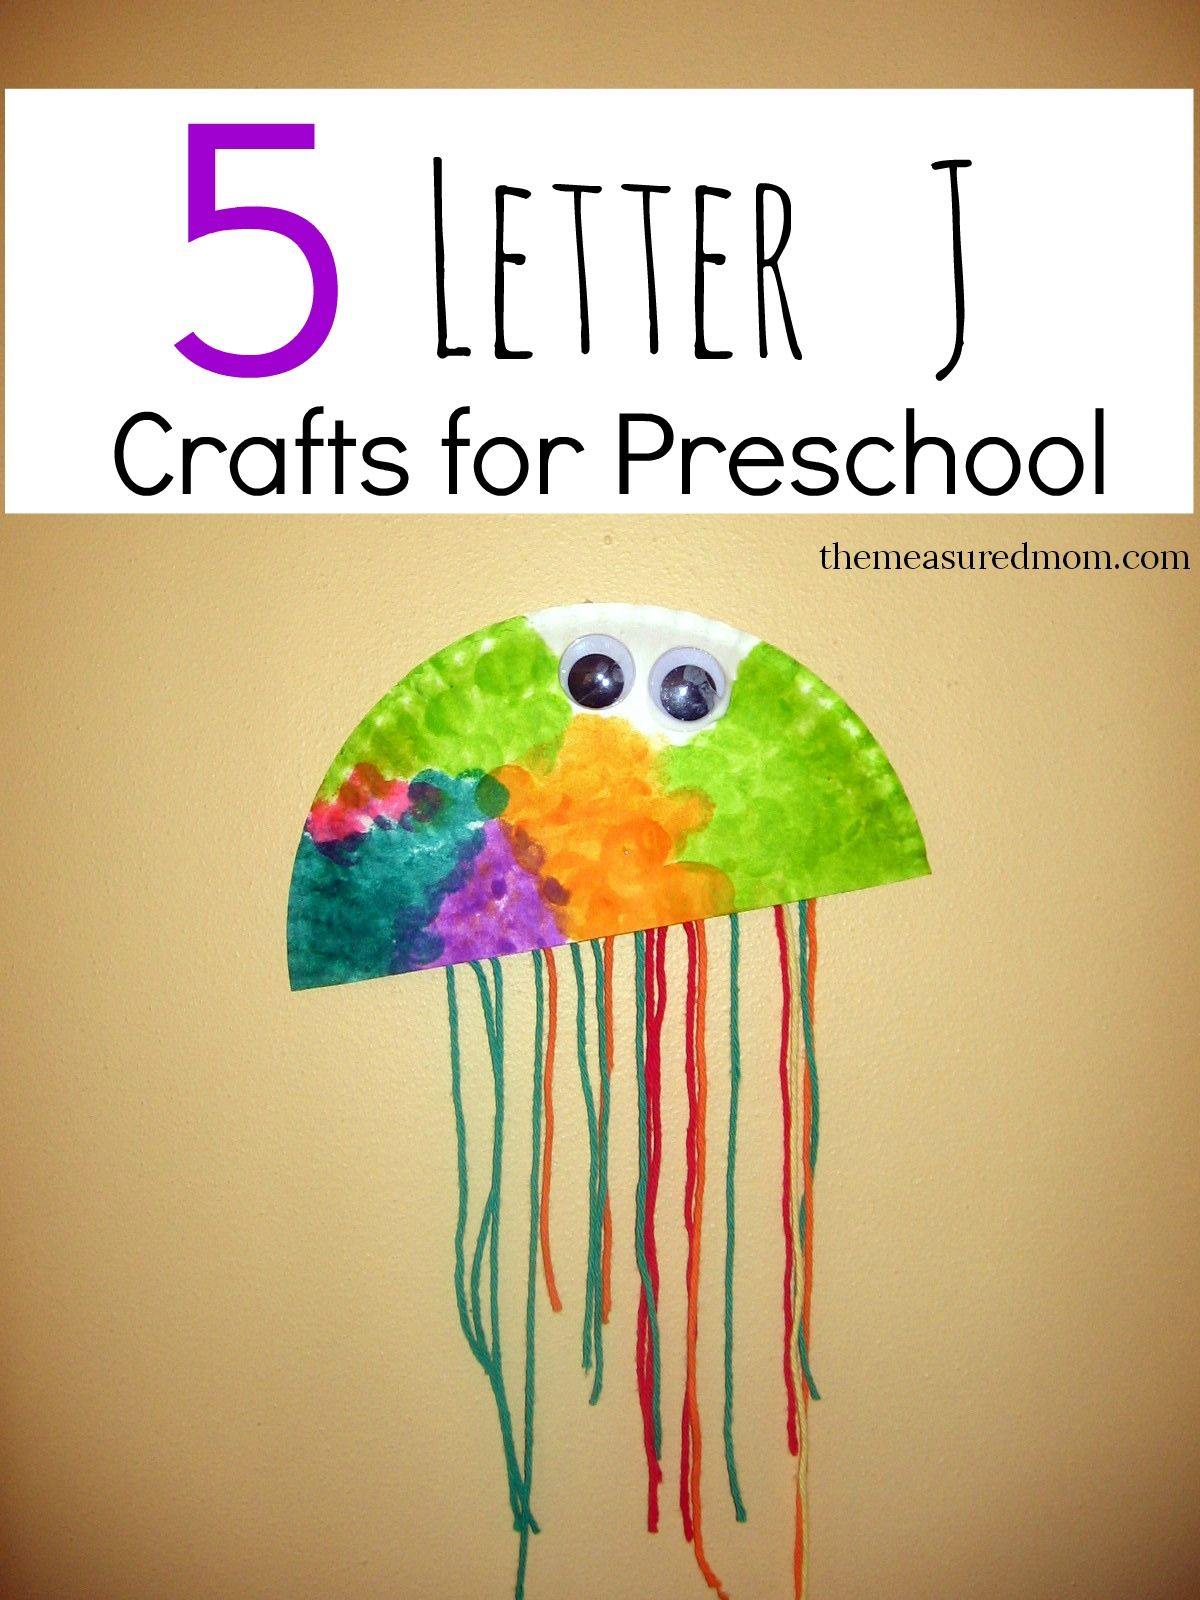 Letter J Crafts Letter J Crafts J Craft Letter J Activities